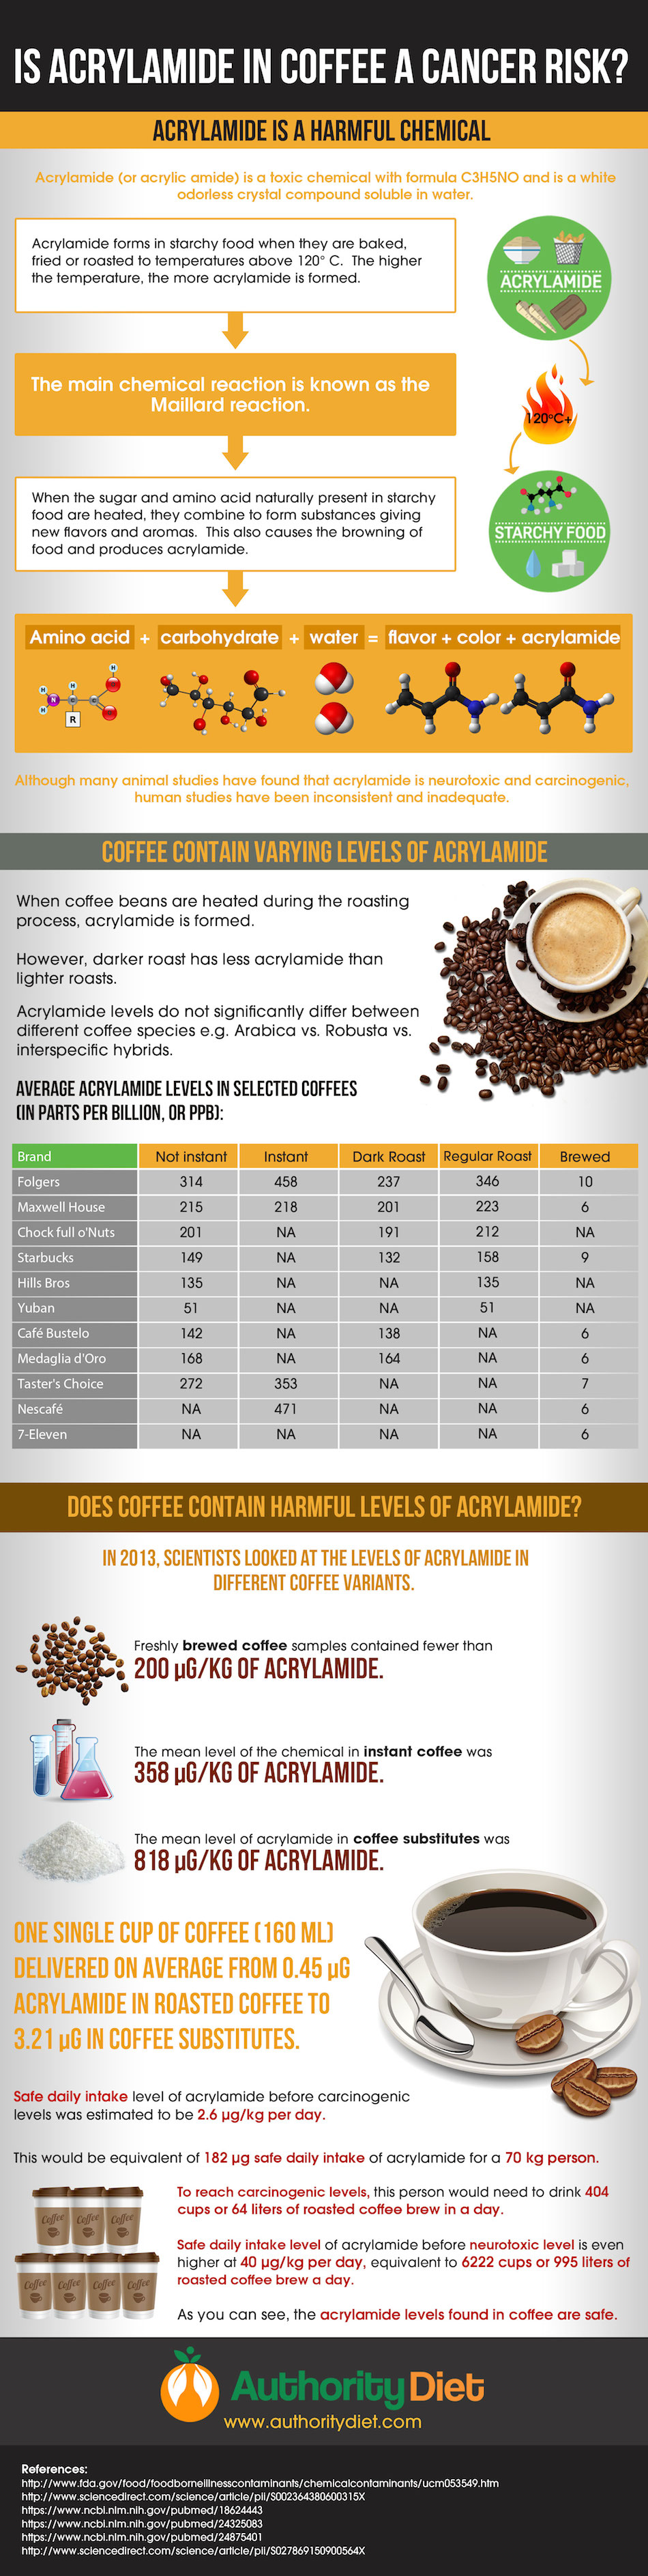 Is The Acrylamide Content In Coffee Safe For you? - Infographic